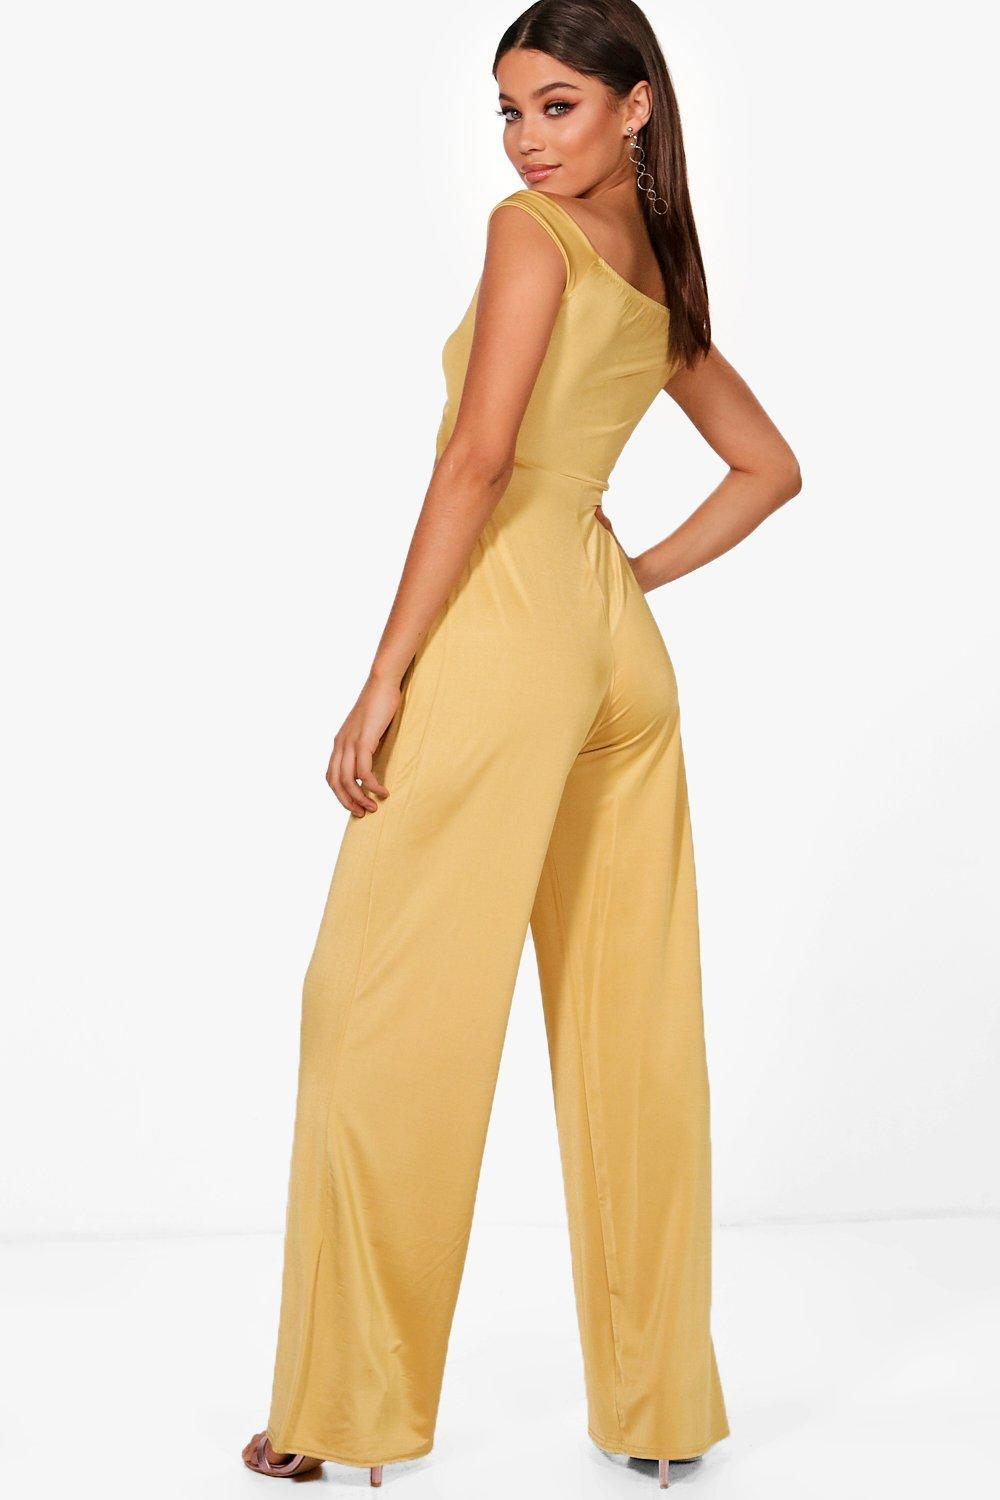 197e75fd2359 Lyst - Boohoo Cut Out Middle Wide Leg Jumpsuit in Yellow